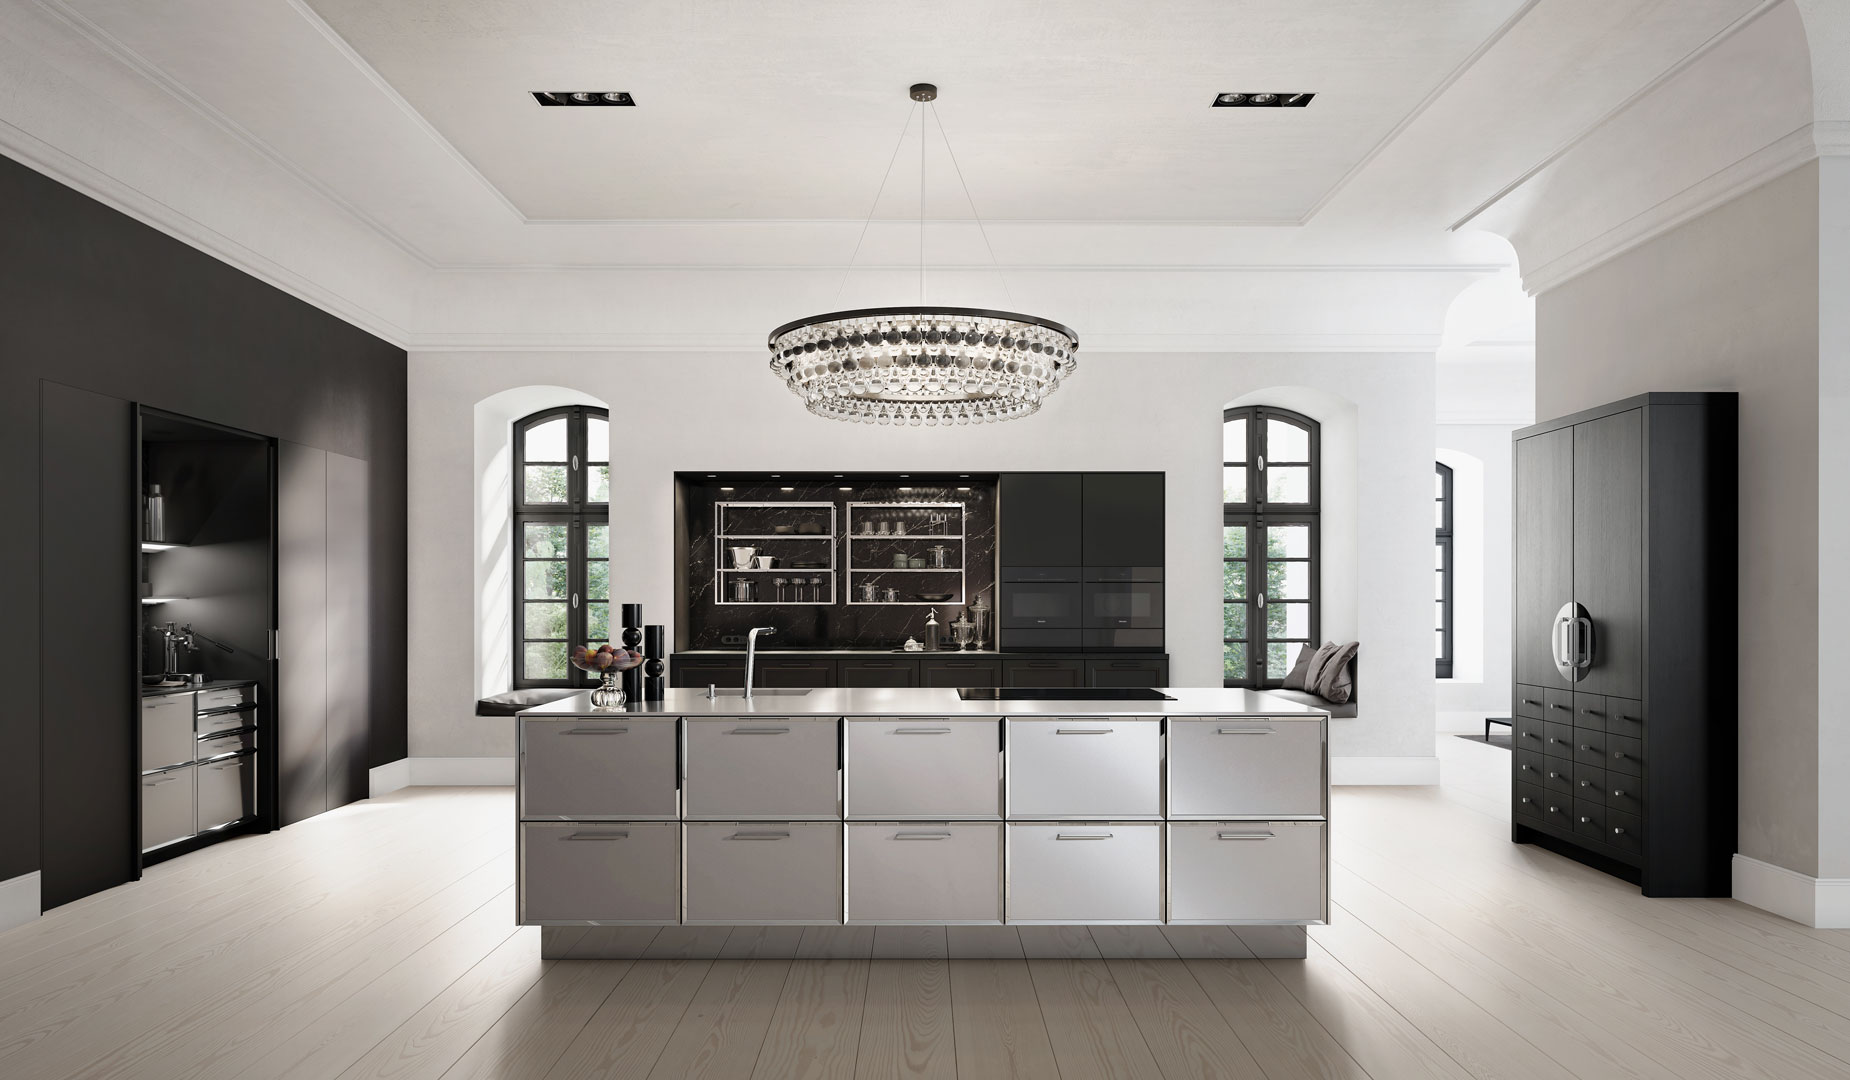 siematic am ring arcade kitchens. Black Bedroom Furniture Sets. Home Design Ideas